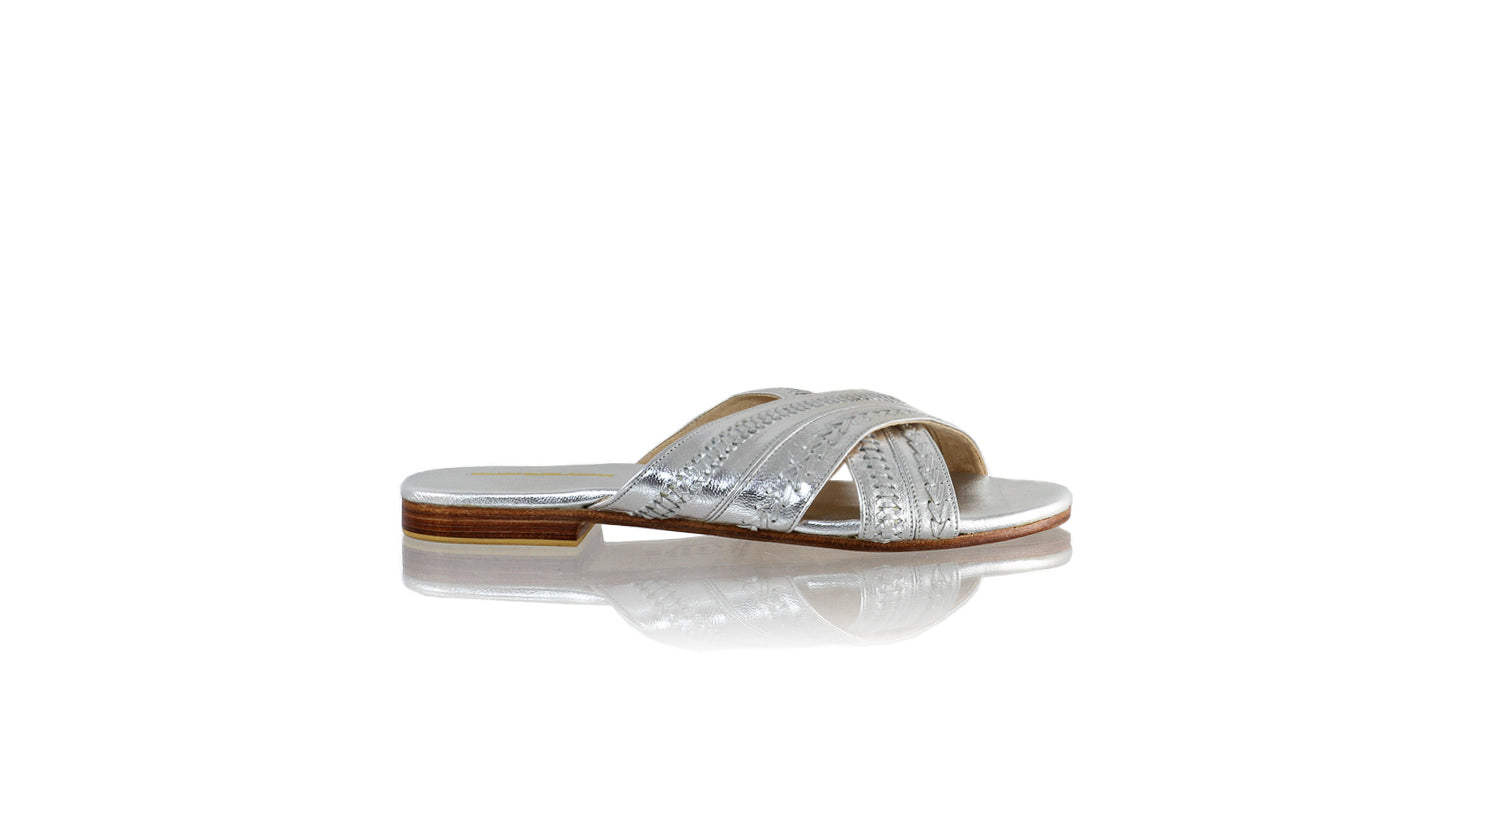 Leather-shoes-Paramita 20mm Flat - Silver-sandals flat-NILUH DJELANTIK-NILUH DJELANTIK